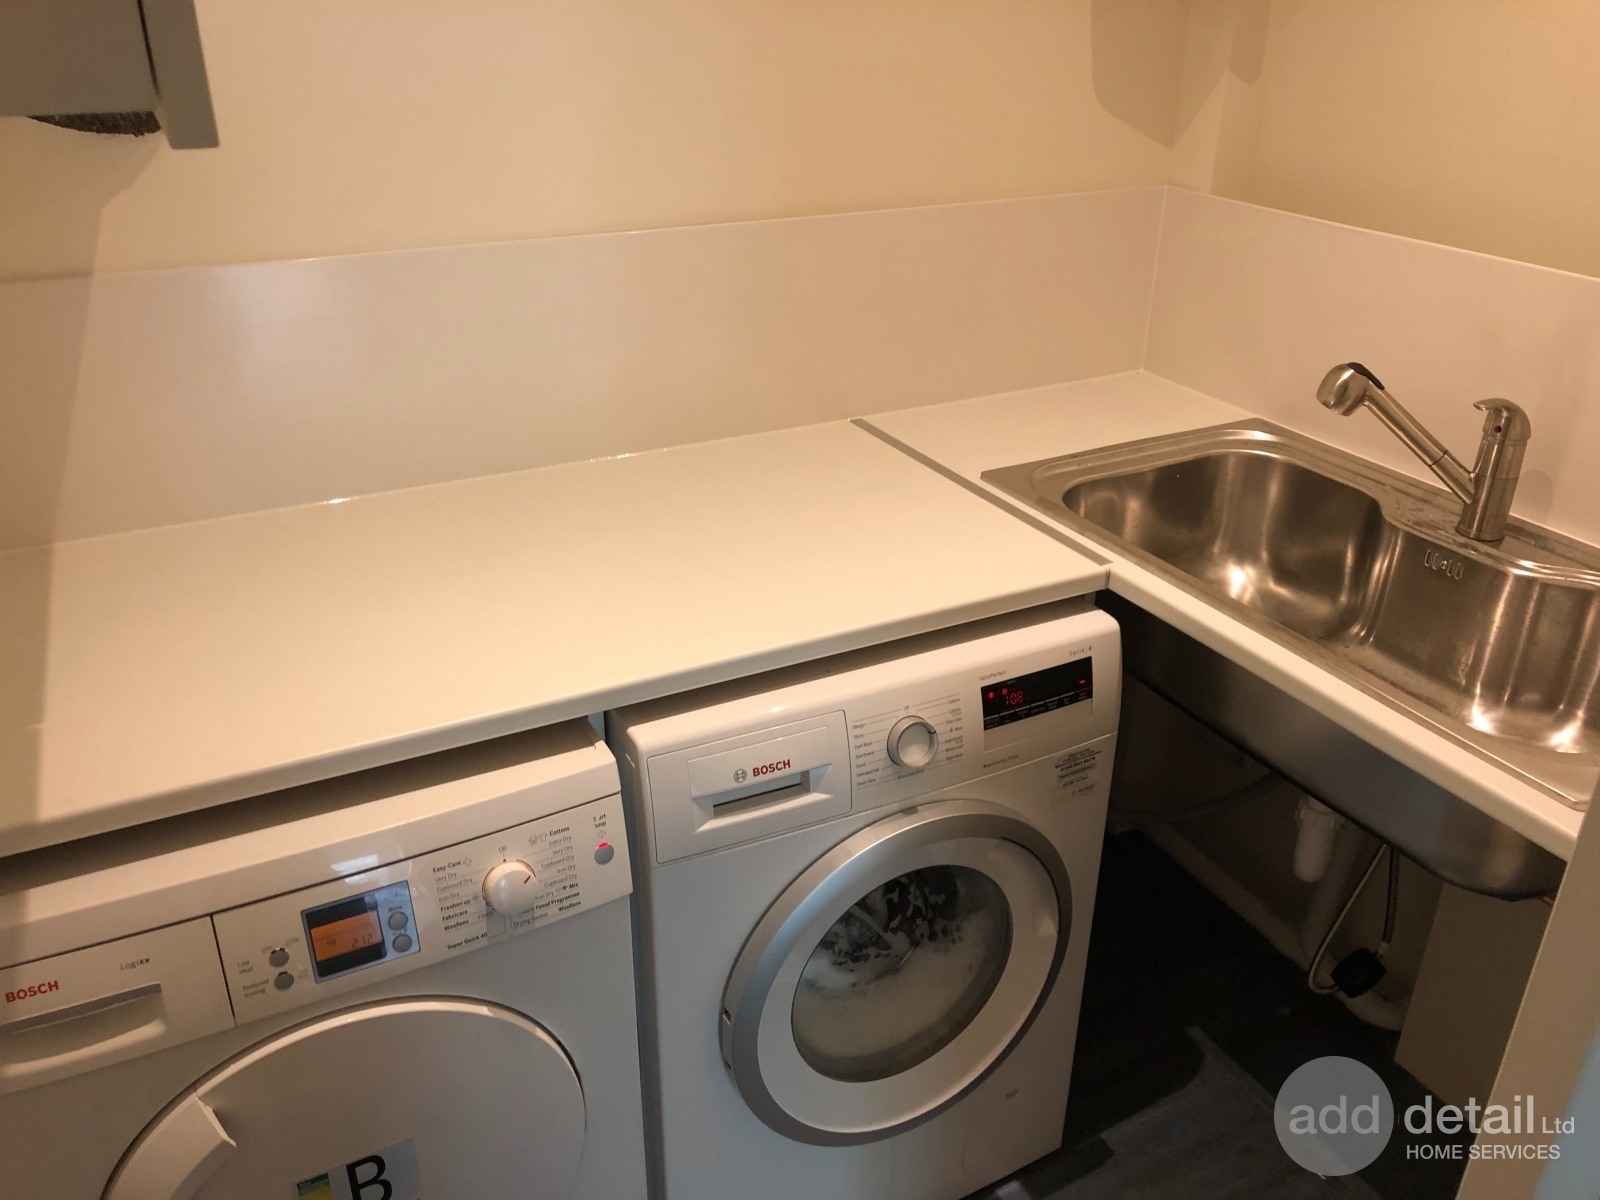 Utility room refurbishment in Muswell Hill, London. - Central London - London